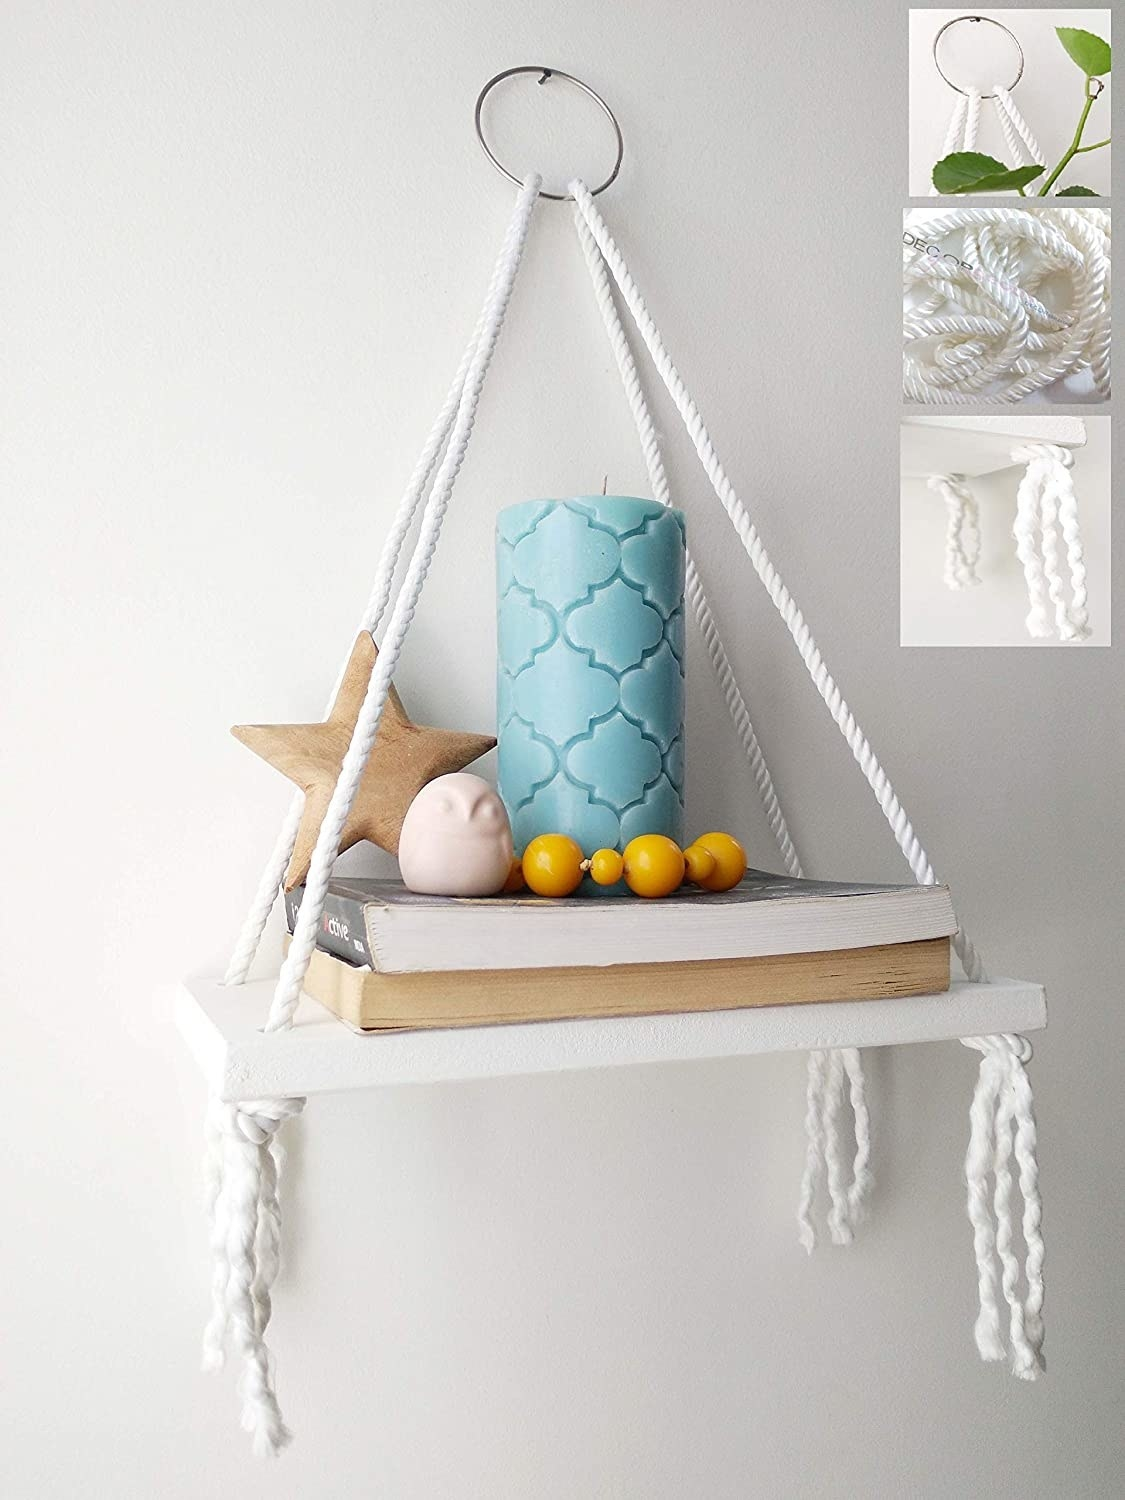 A hanging shelf with some books, a candle and some decoratives on it.